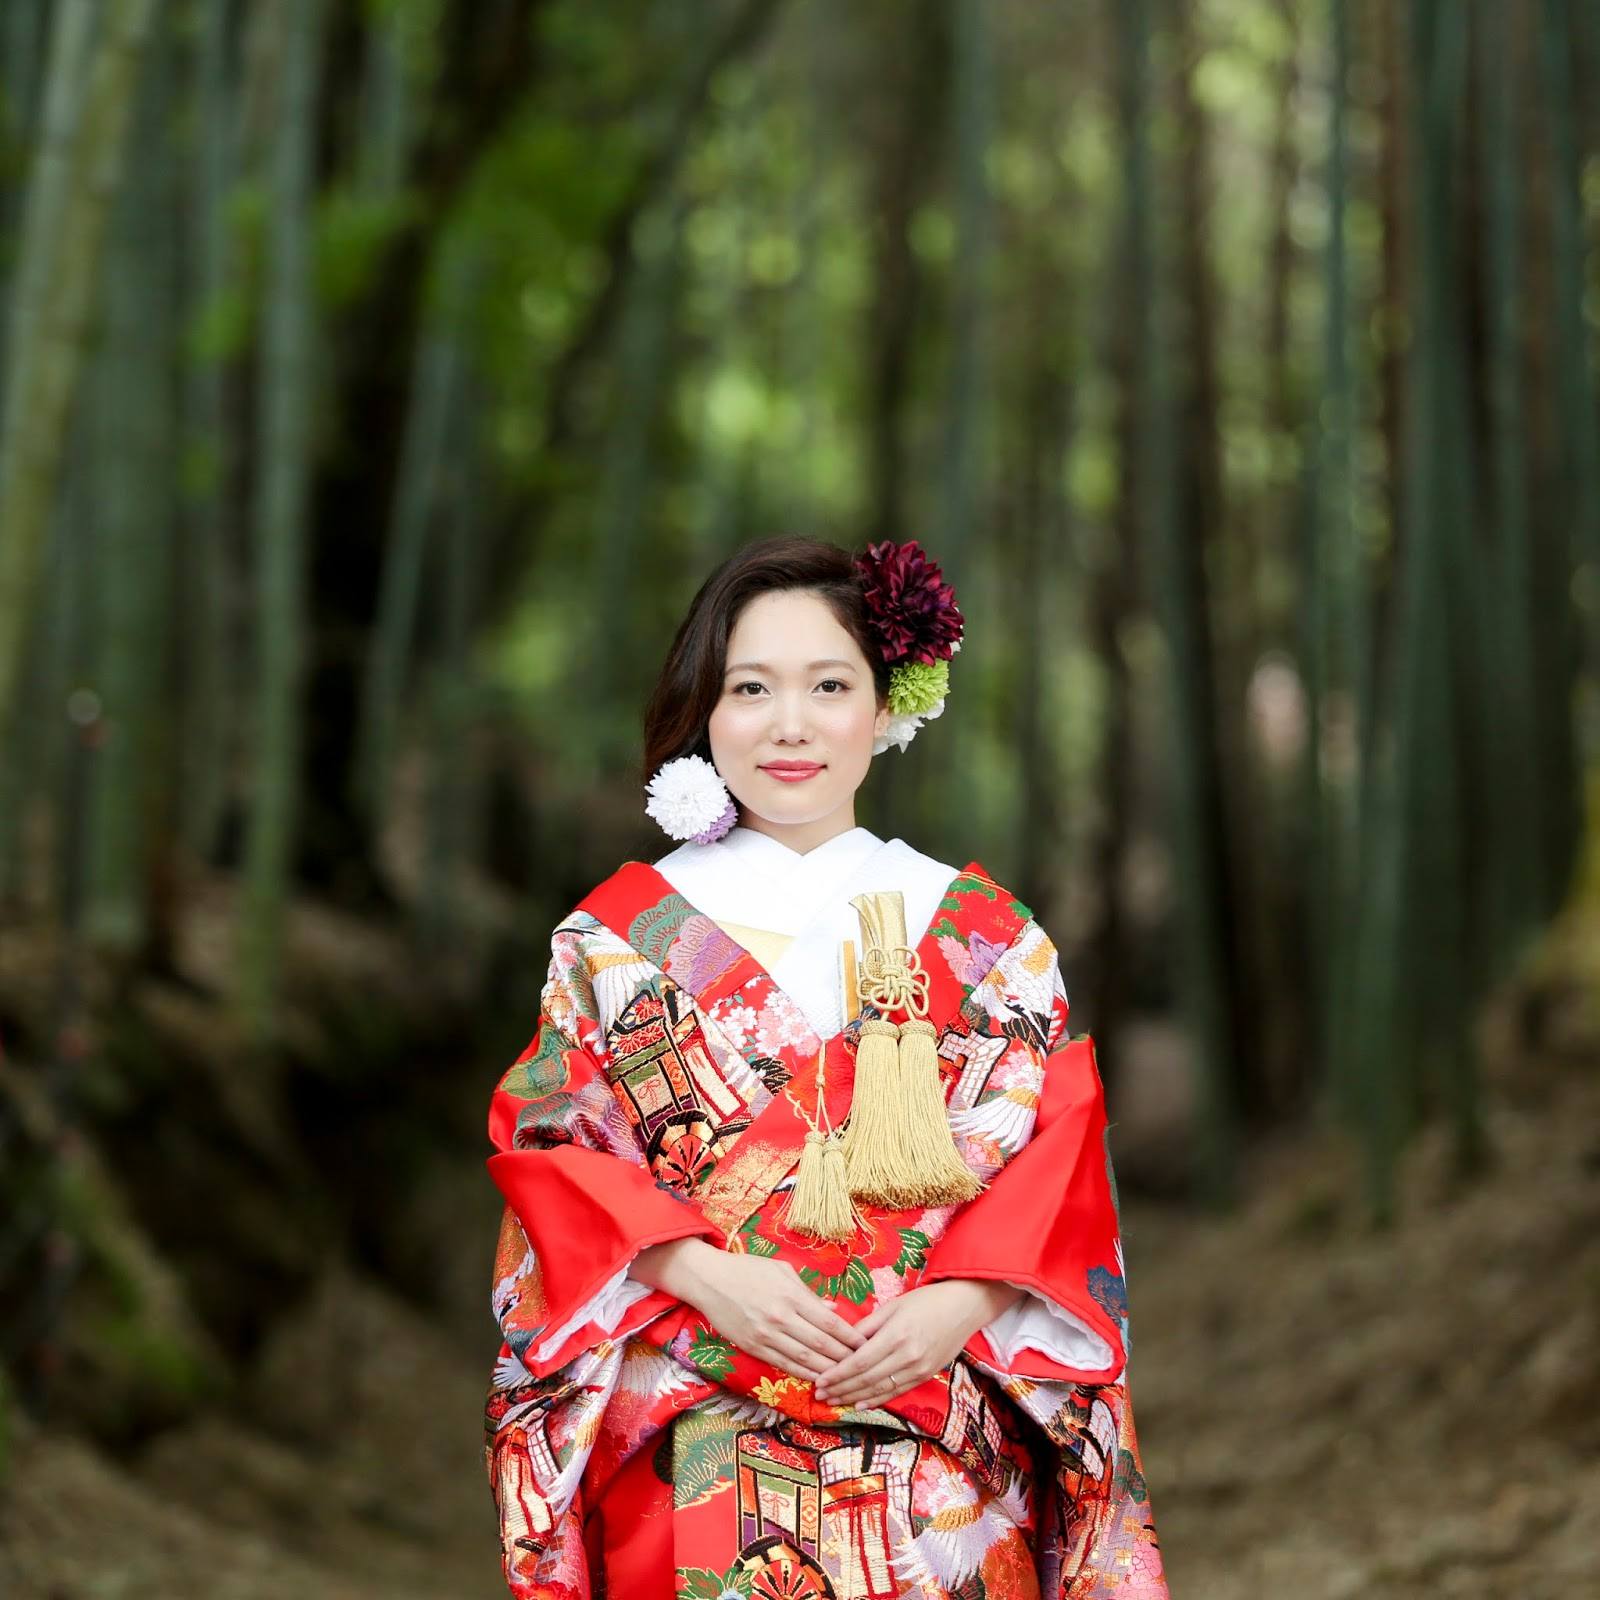 Japanese Wedding Hairstyles: DE & Co. Decollte Photography ・ 德可莉日本專業婚紗攝影: Introduction